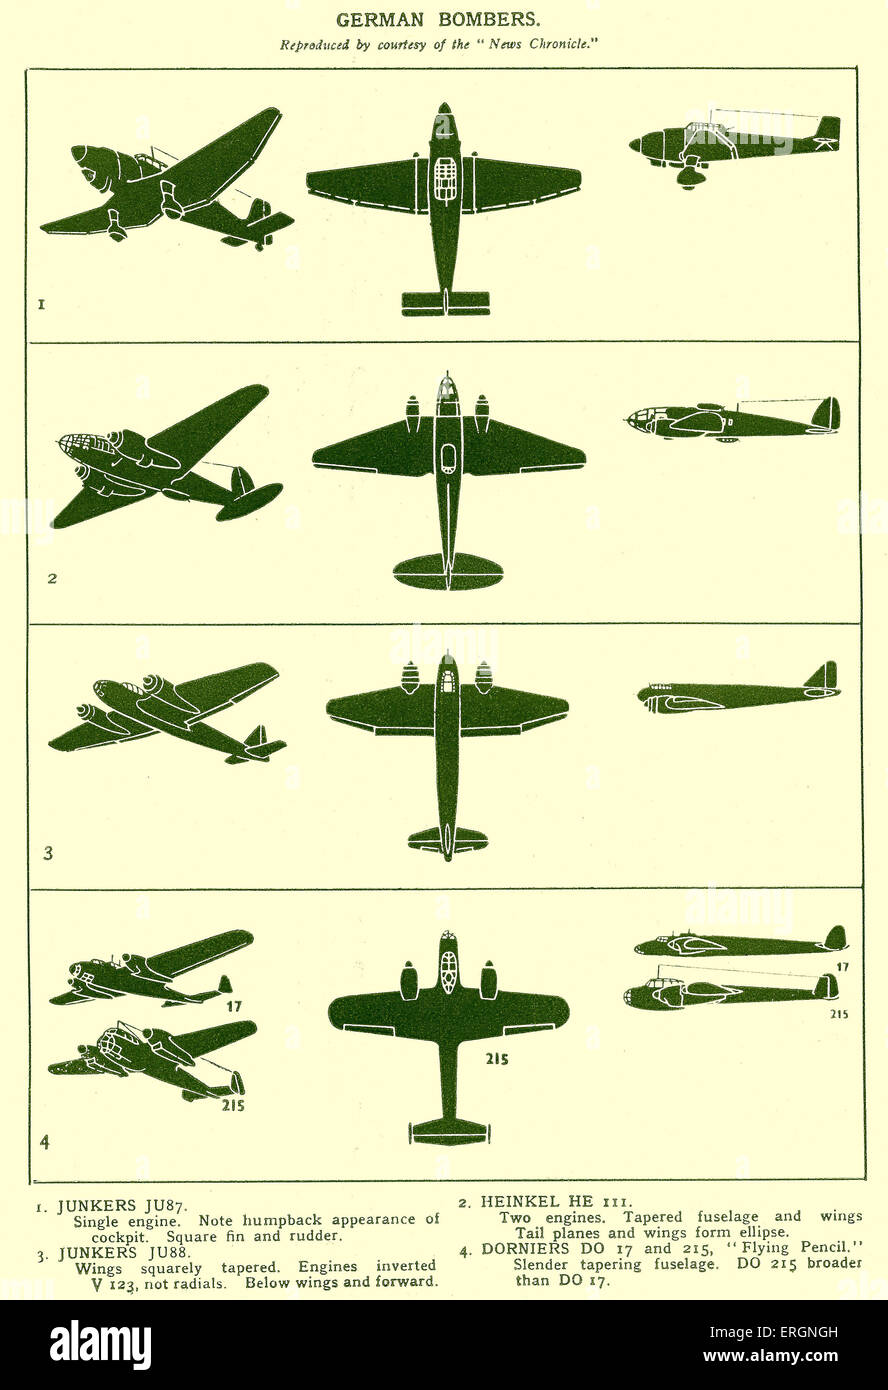 WW2 - German Bombers. Diagrams of Junkers JU87, Heinkel HE III, Junkers JU88 and Dorniers DO 17 & 215 bombers. - Stock Image